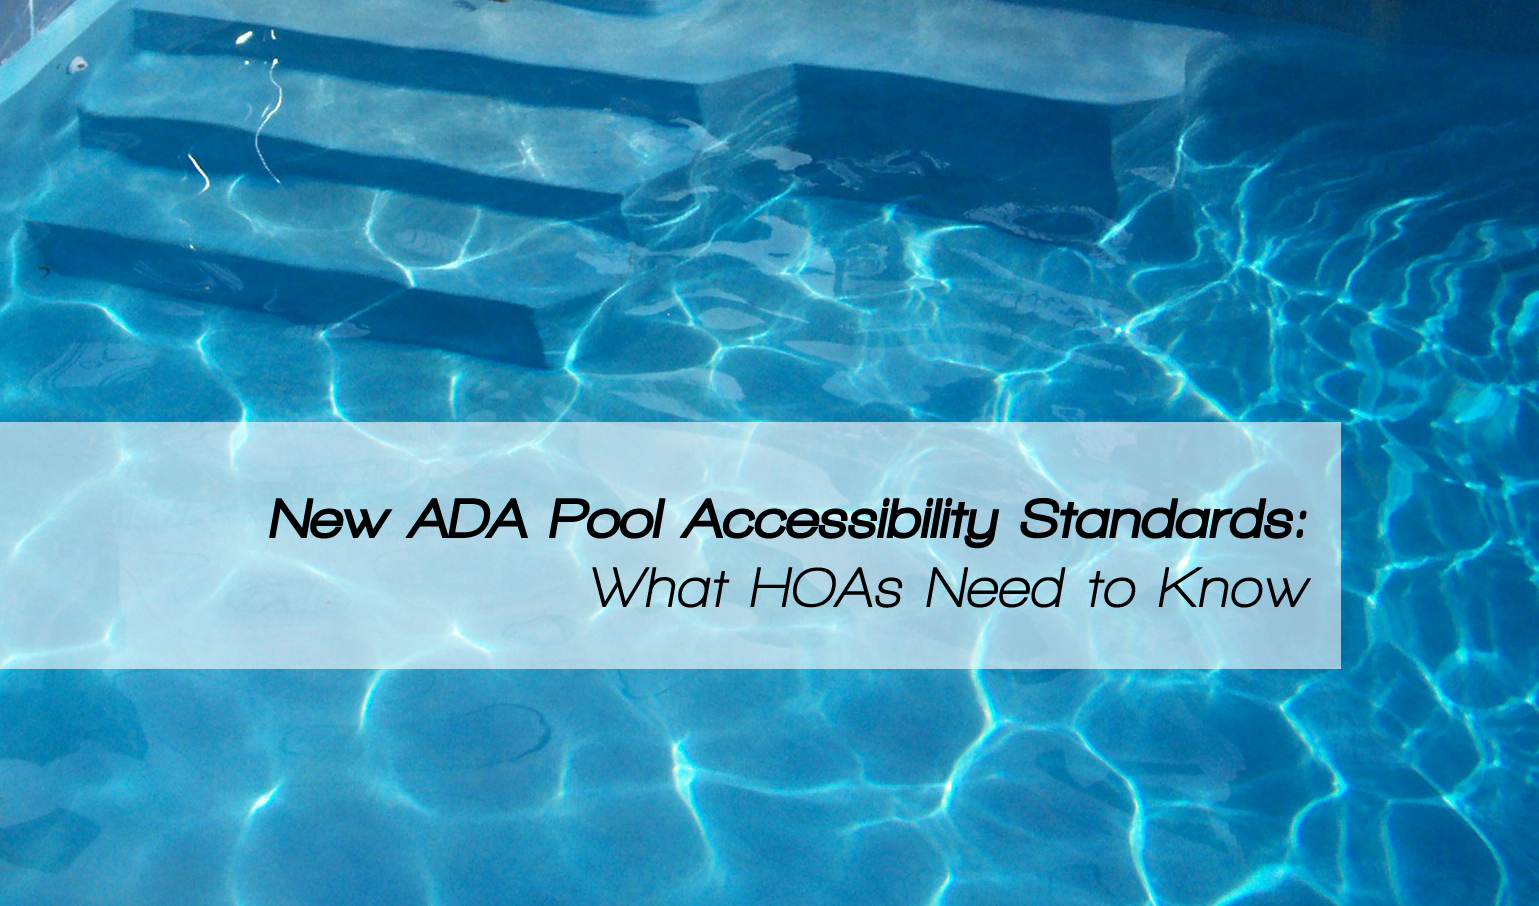 New ADA Pool Accessibility Standards: What HOAs Need to Know  – Article by Molly Foley-Healy